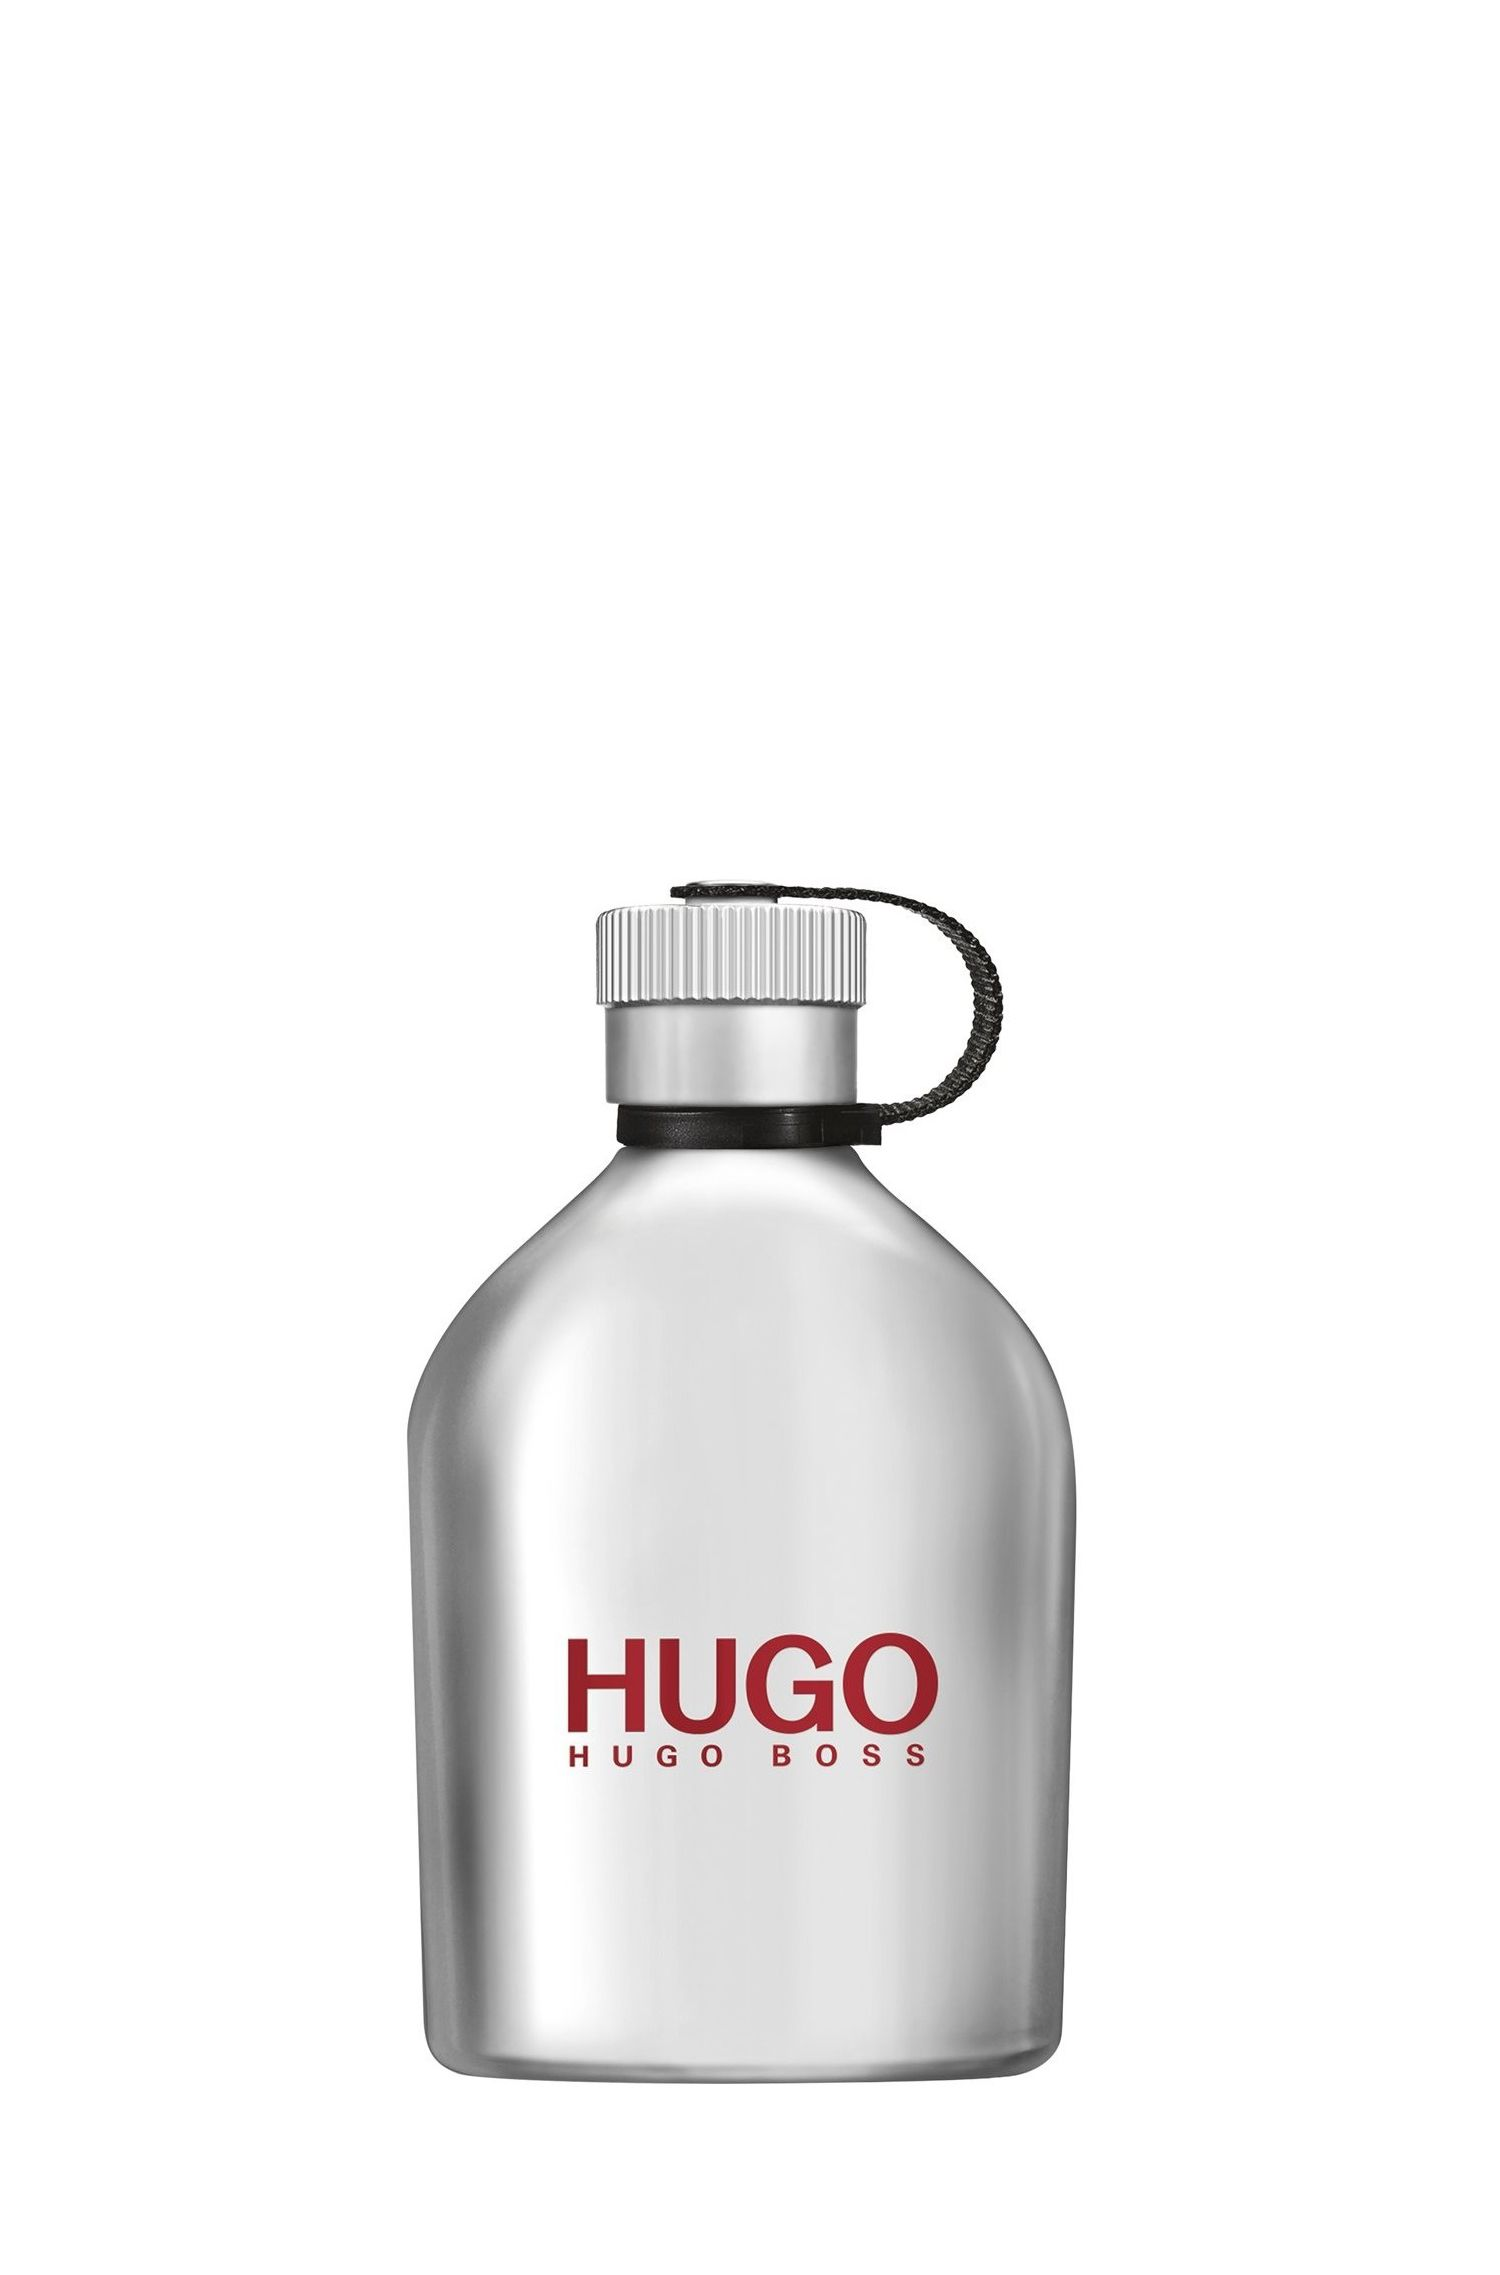 Eau de toilette HUGO Iced de 200 ml